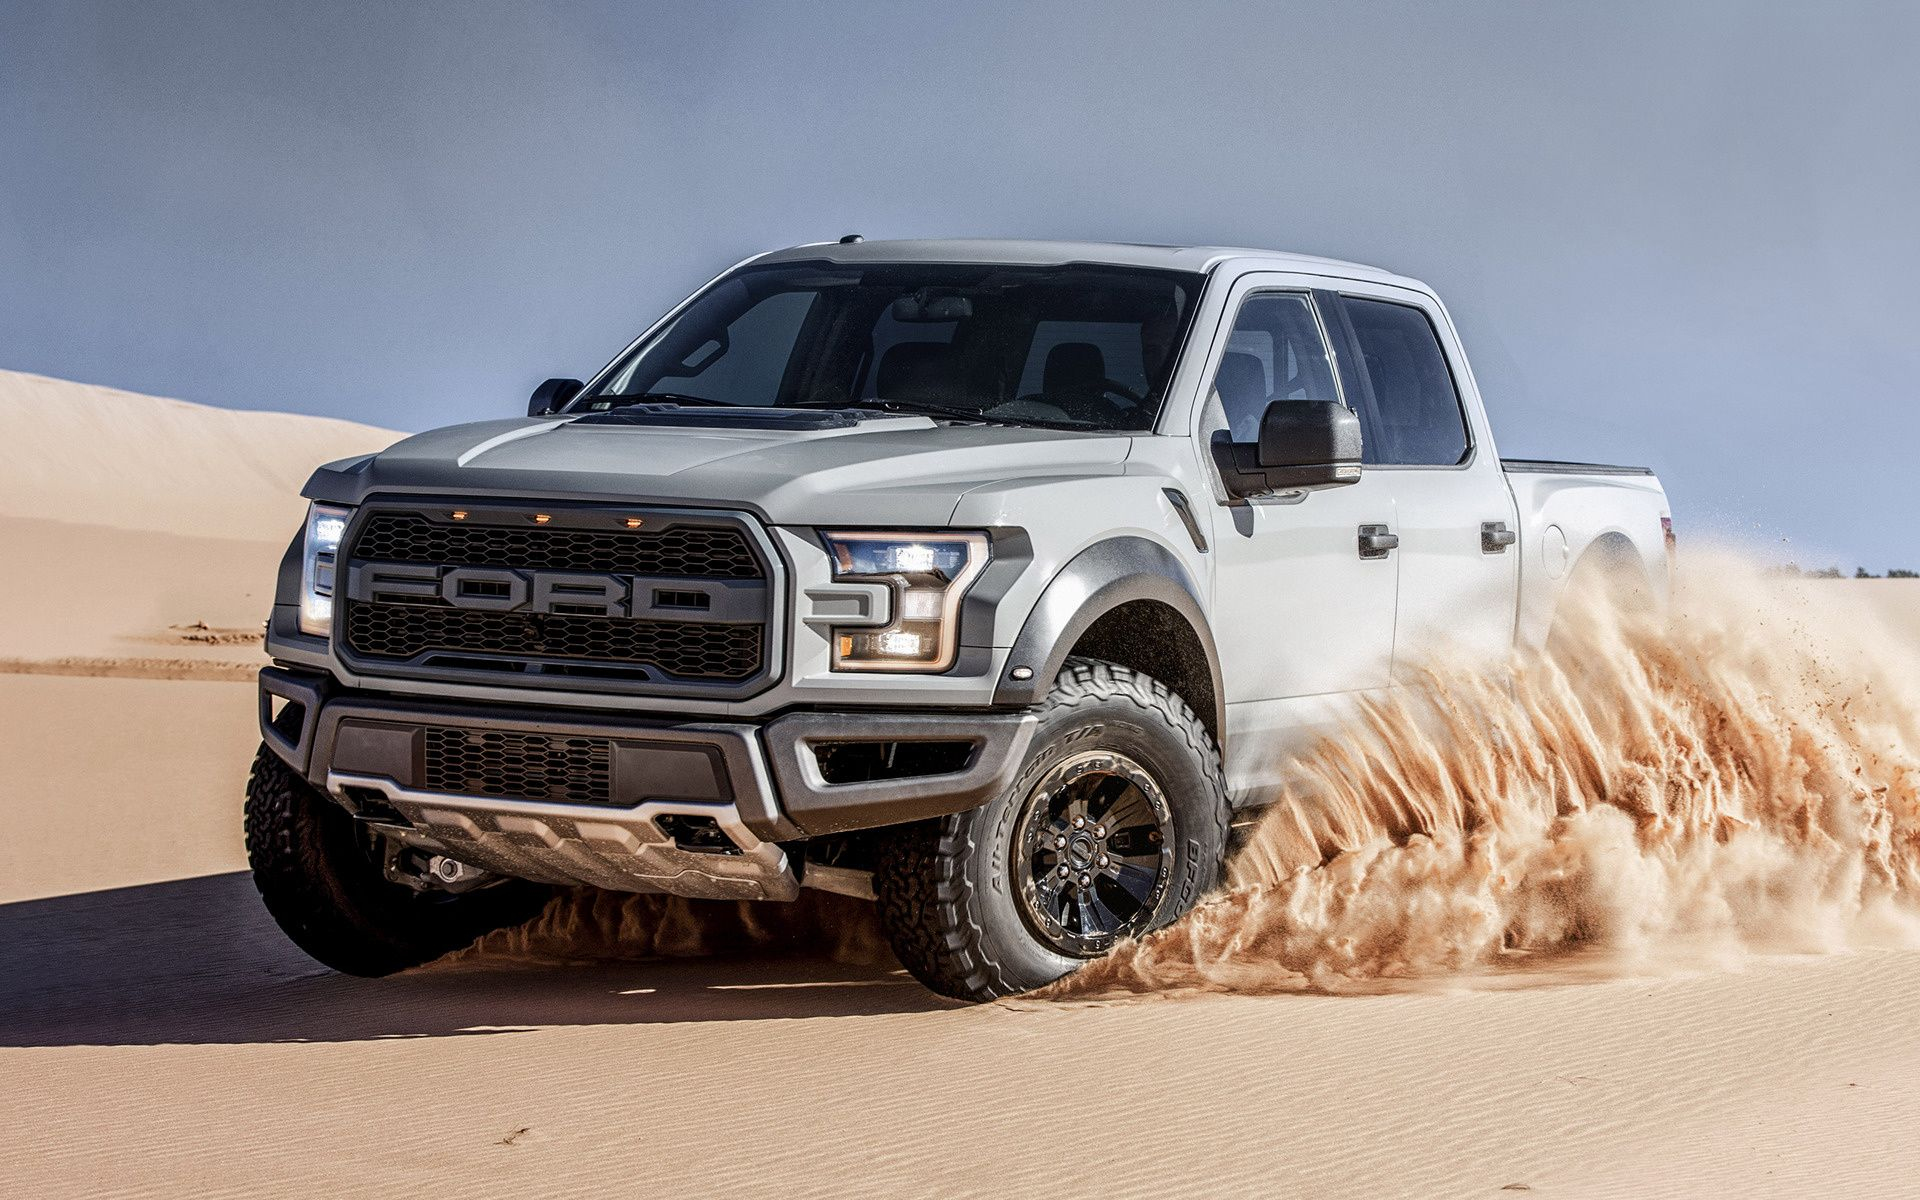 Ford f 150 raptor supercrew 2017 wallpapers and hd images ford f 150 raptor supercrew 2017 wallpapers and hd images voltagebd Choice Image